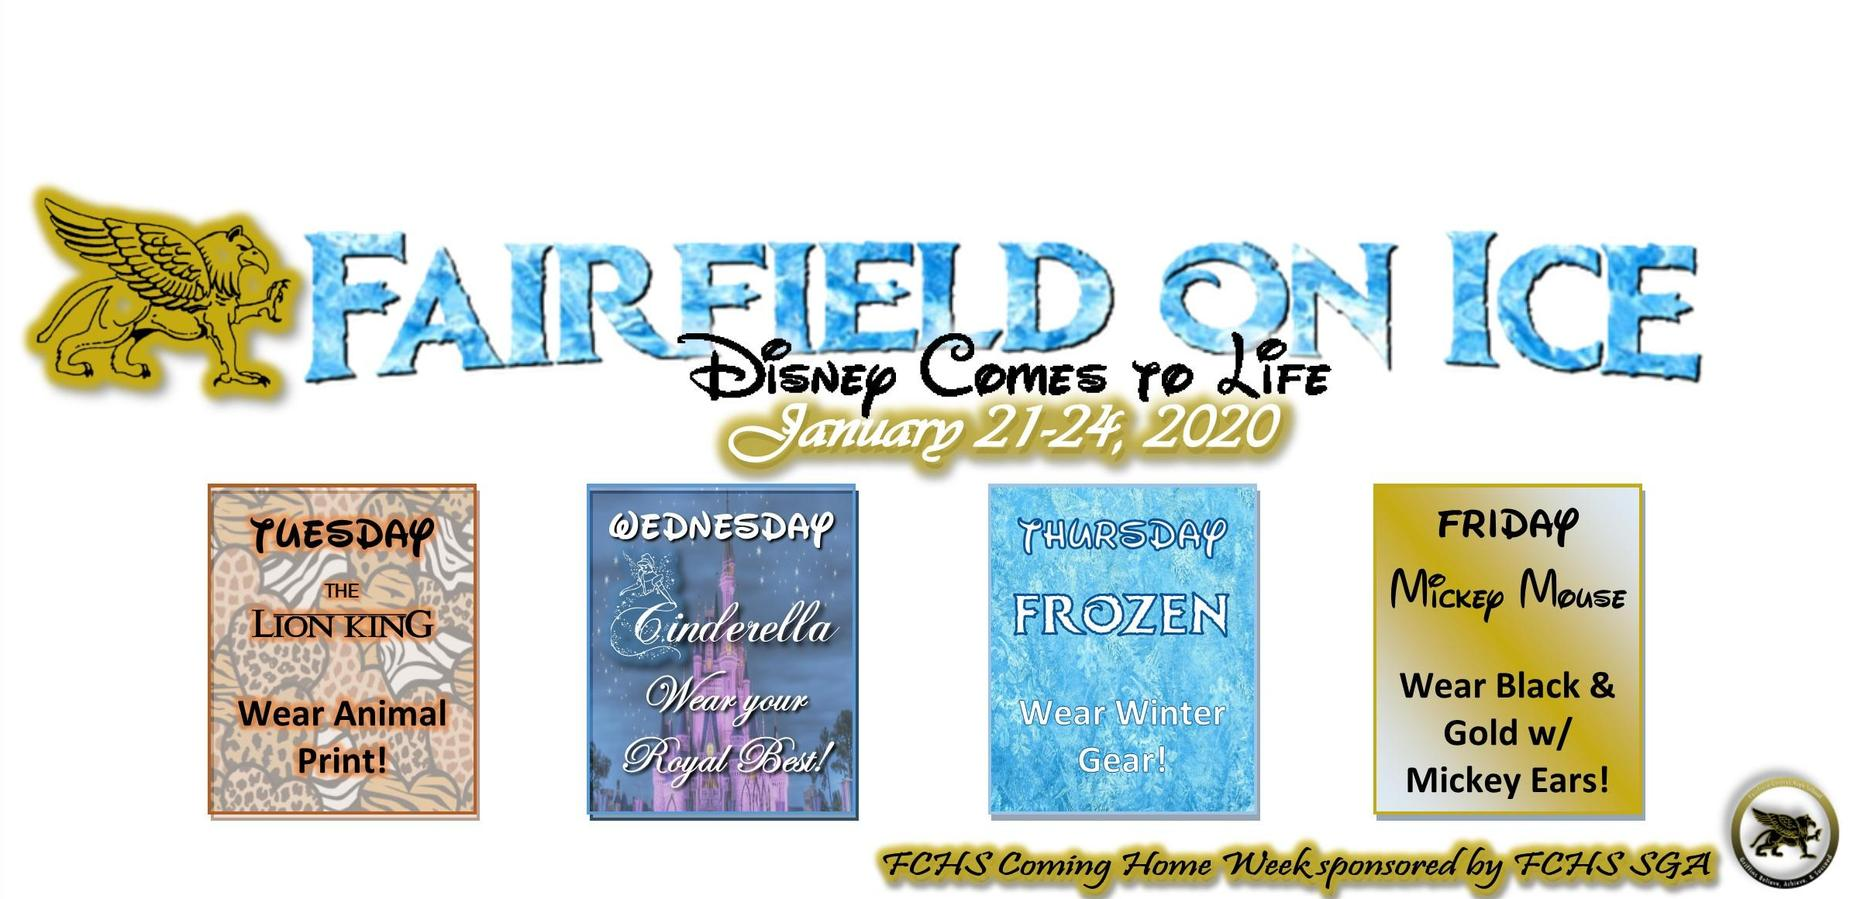 Fairfield on Ice: Disney Comes to Life [January 21-24] Tuesday-The Lion King Wear Animal Print; Wednesday-Cinderella Wear your Royal Best; Thursday-Frozen Wear Winter Gear; Friday-Mickey Mouse Wear Black & Gold w/ Mickey Ears!